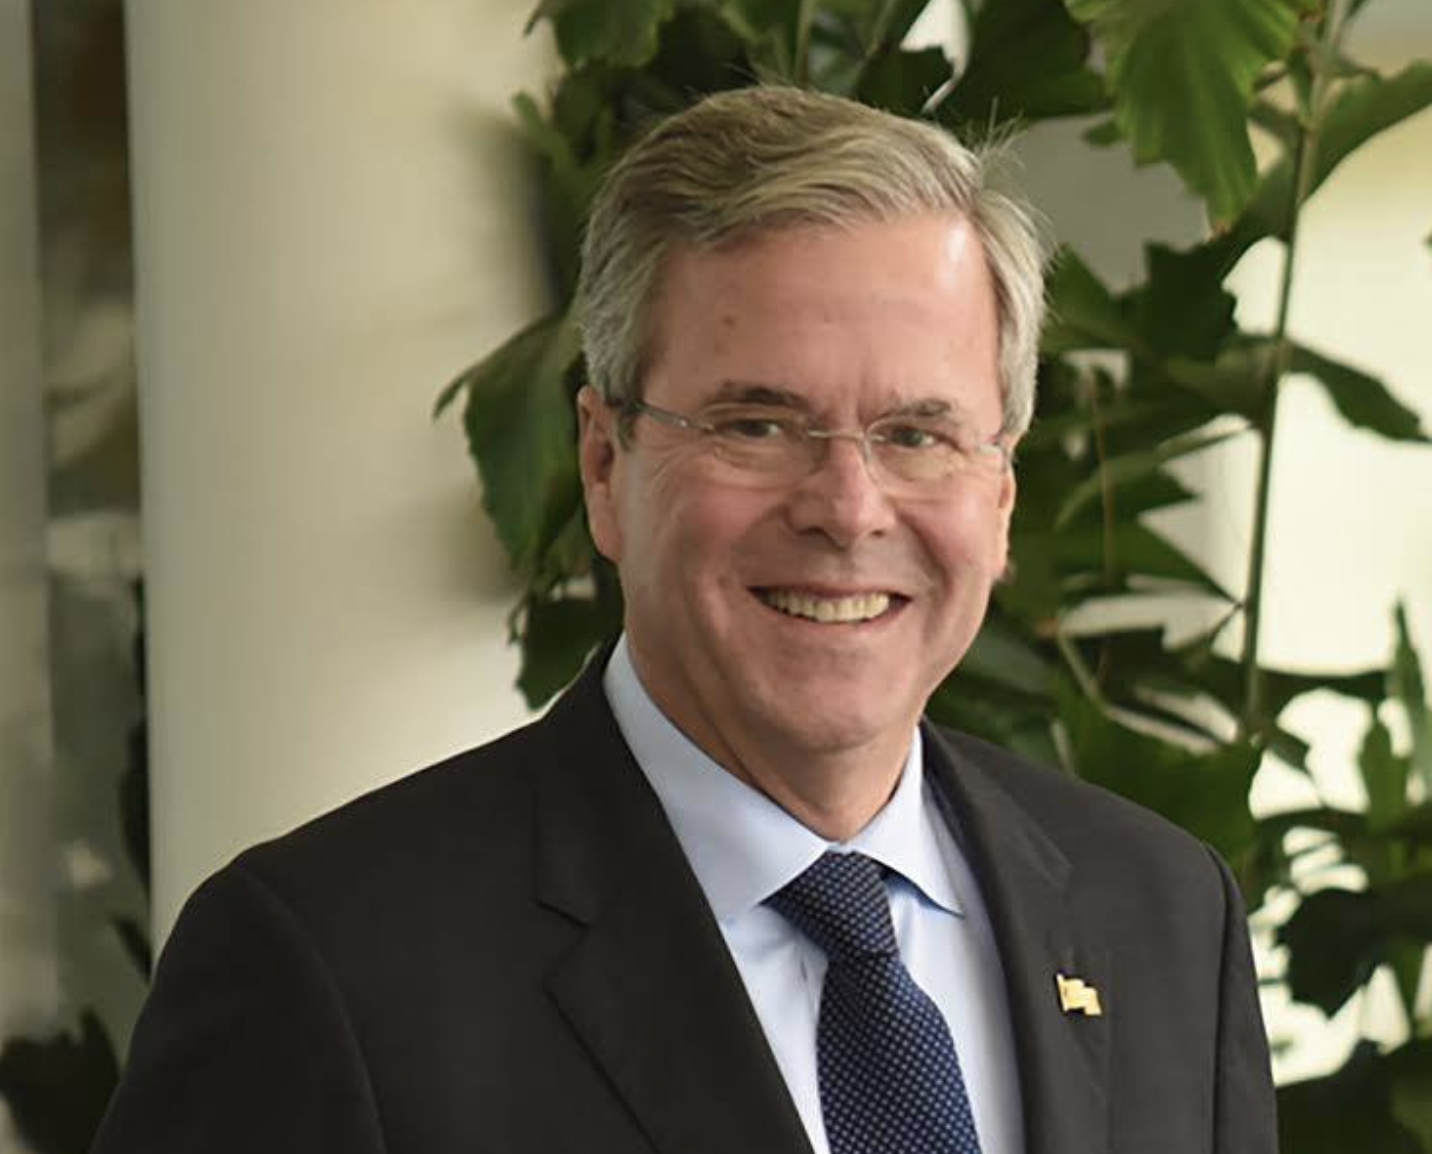 Jeb Bush joins with NeverTrumpers and Democrats in dismissing Trump's legal challenges